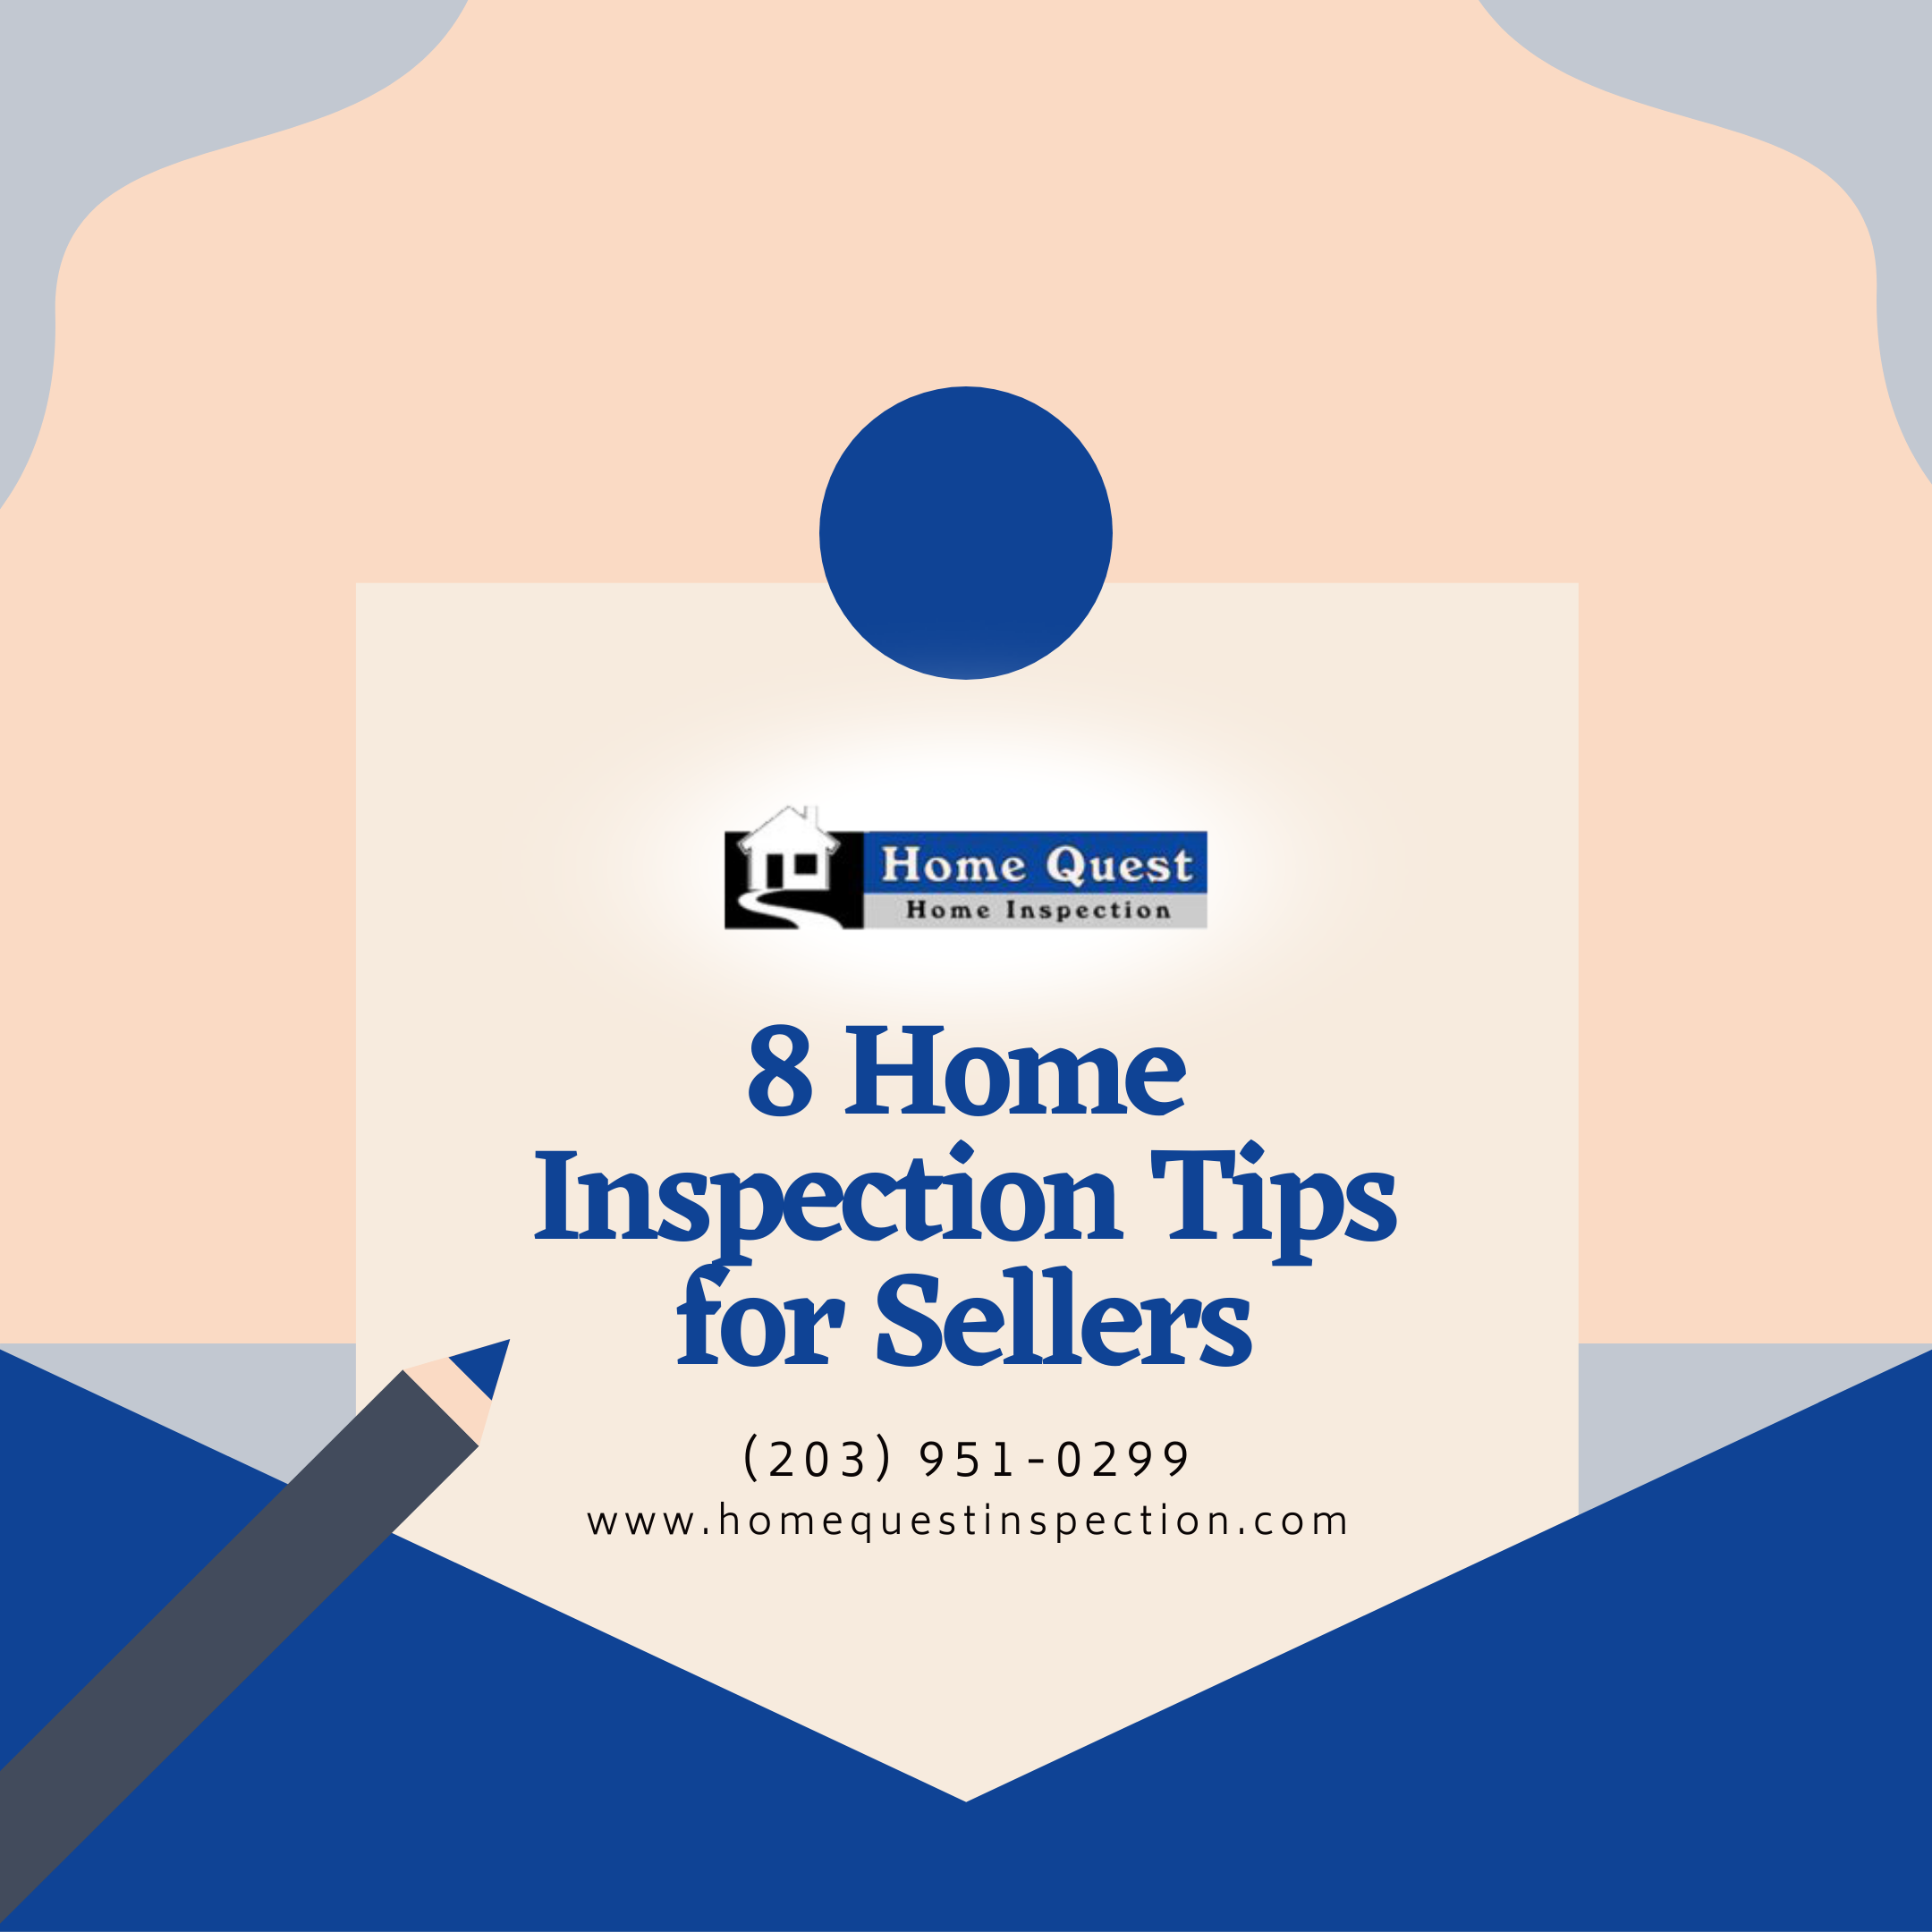 Home Quest Home Inspection 8 Home Inspection Tips for Sellers